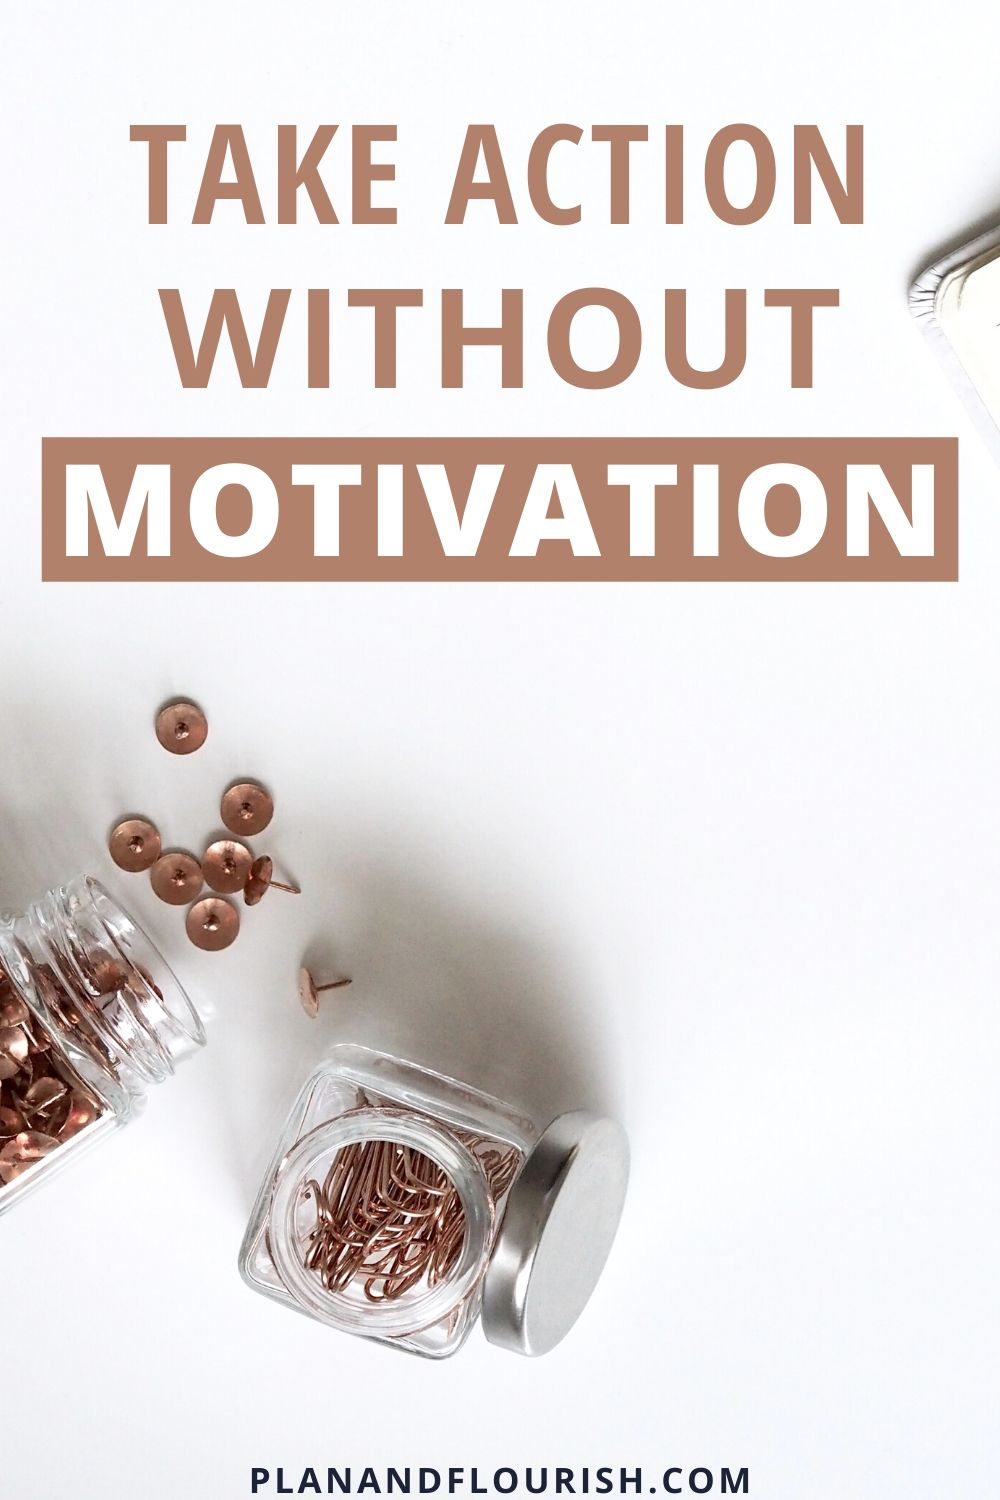 Take Action Without Motivation